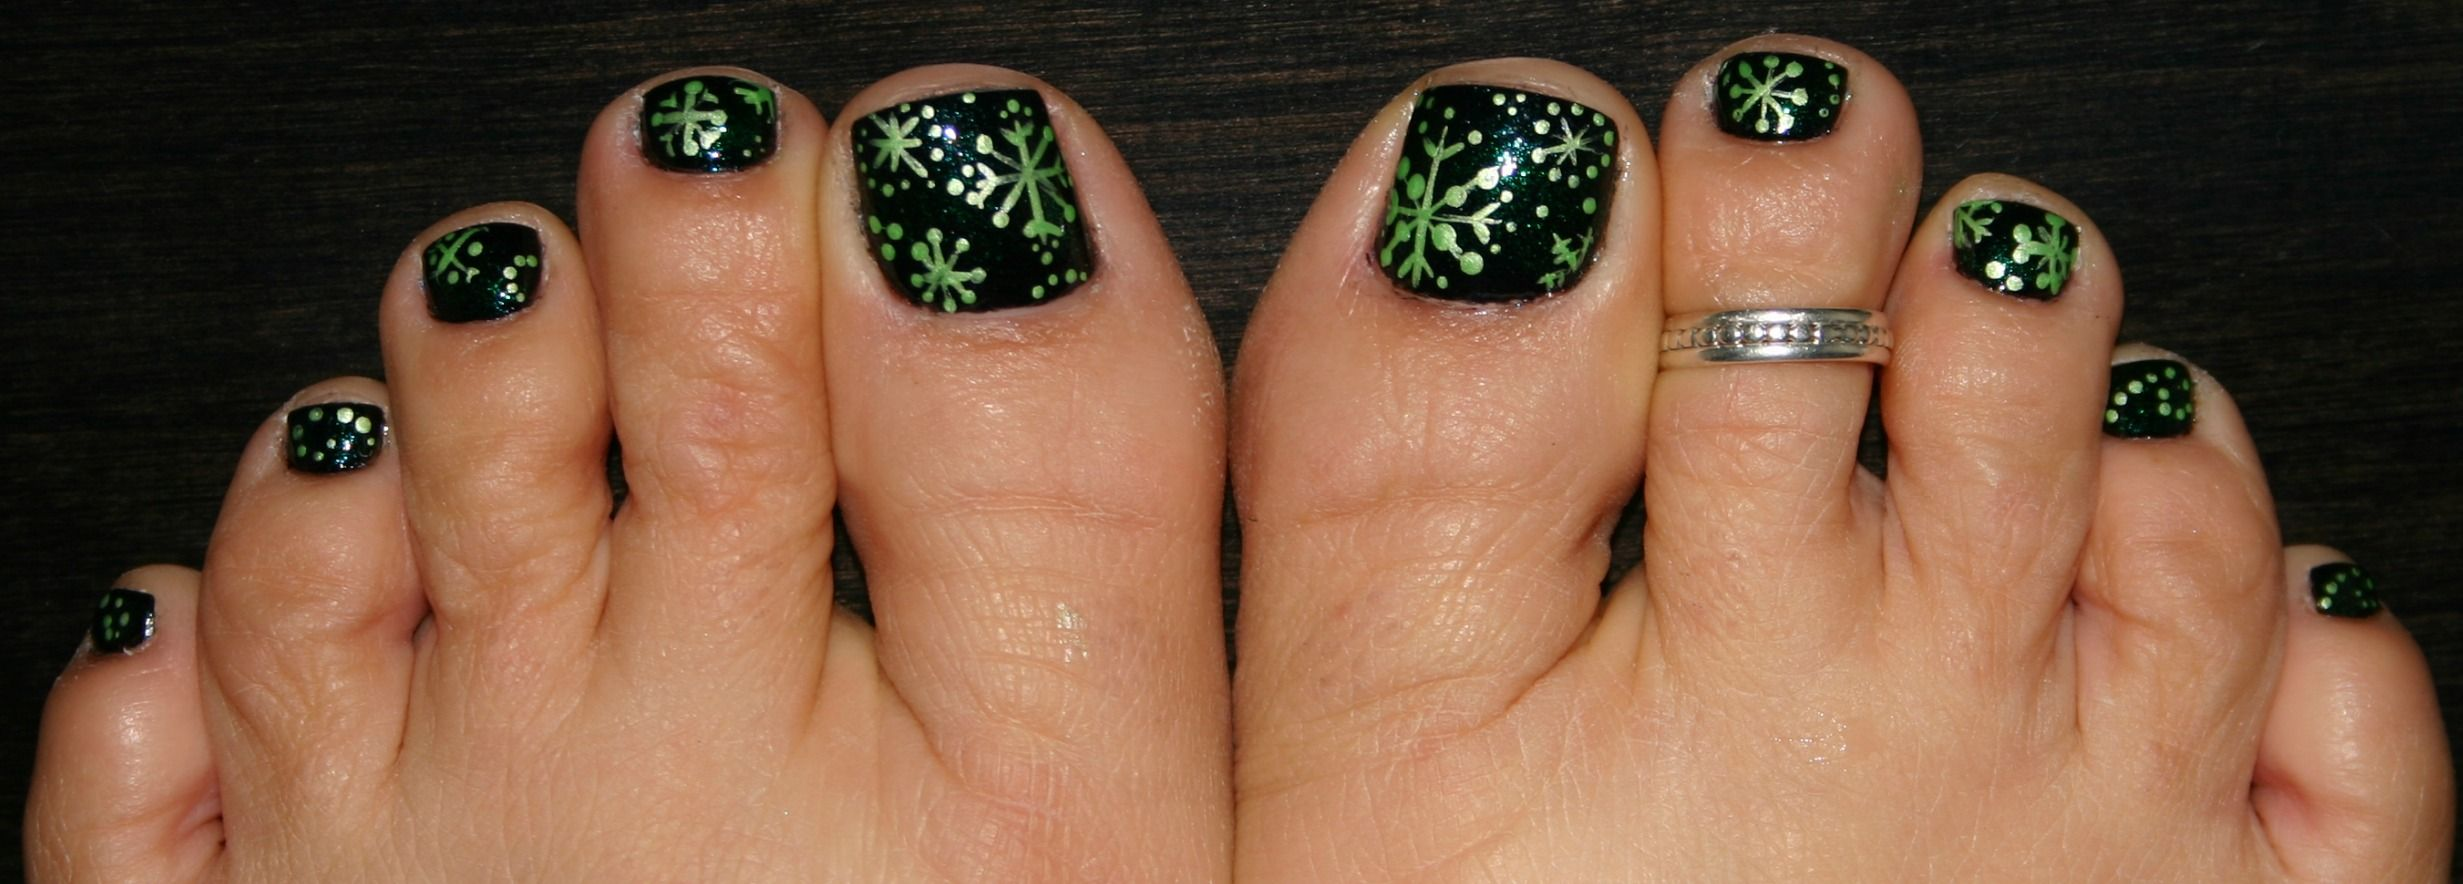 Pedicure Painted Toes A Dark Green Then Added A Pearl White Acrylic Paint To A Light Green And This Is Toe Nail Color Green Toe Nails Christmas Nail Designs